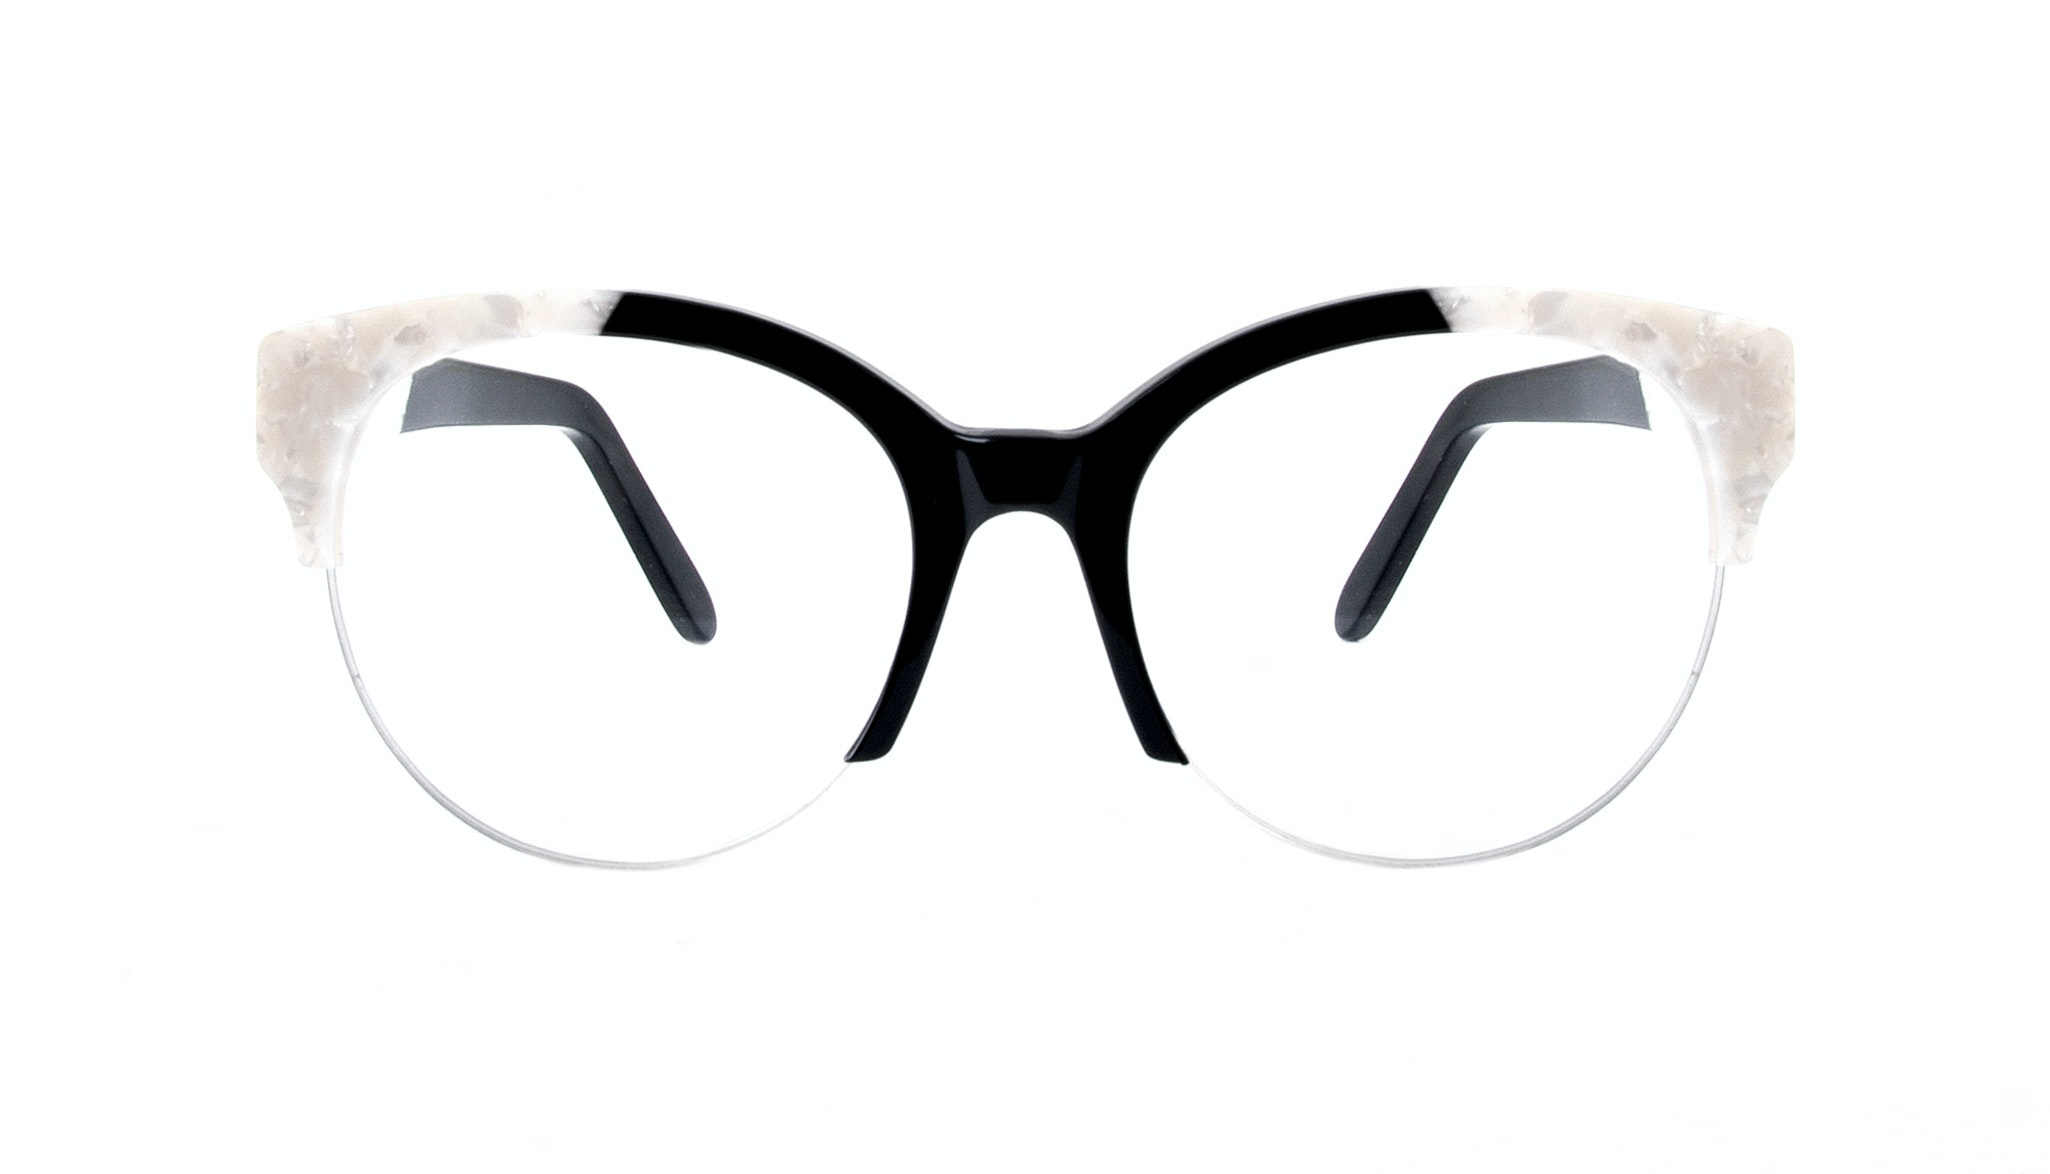 Affordable Fashion Glasses Cat Eye Round Semi-Rimless Eyeglasses Women Eclipse Light Onyx Pearl Front